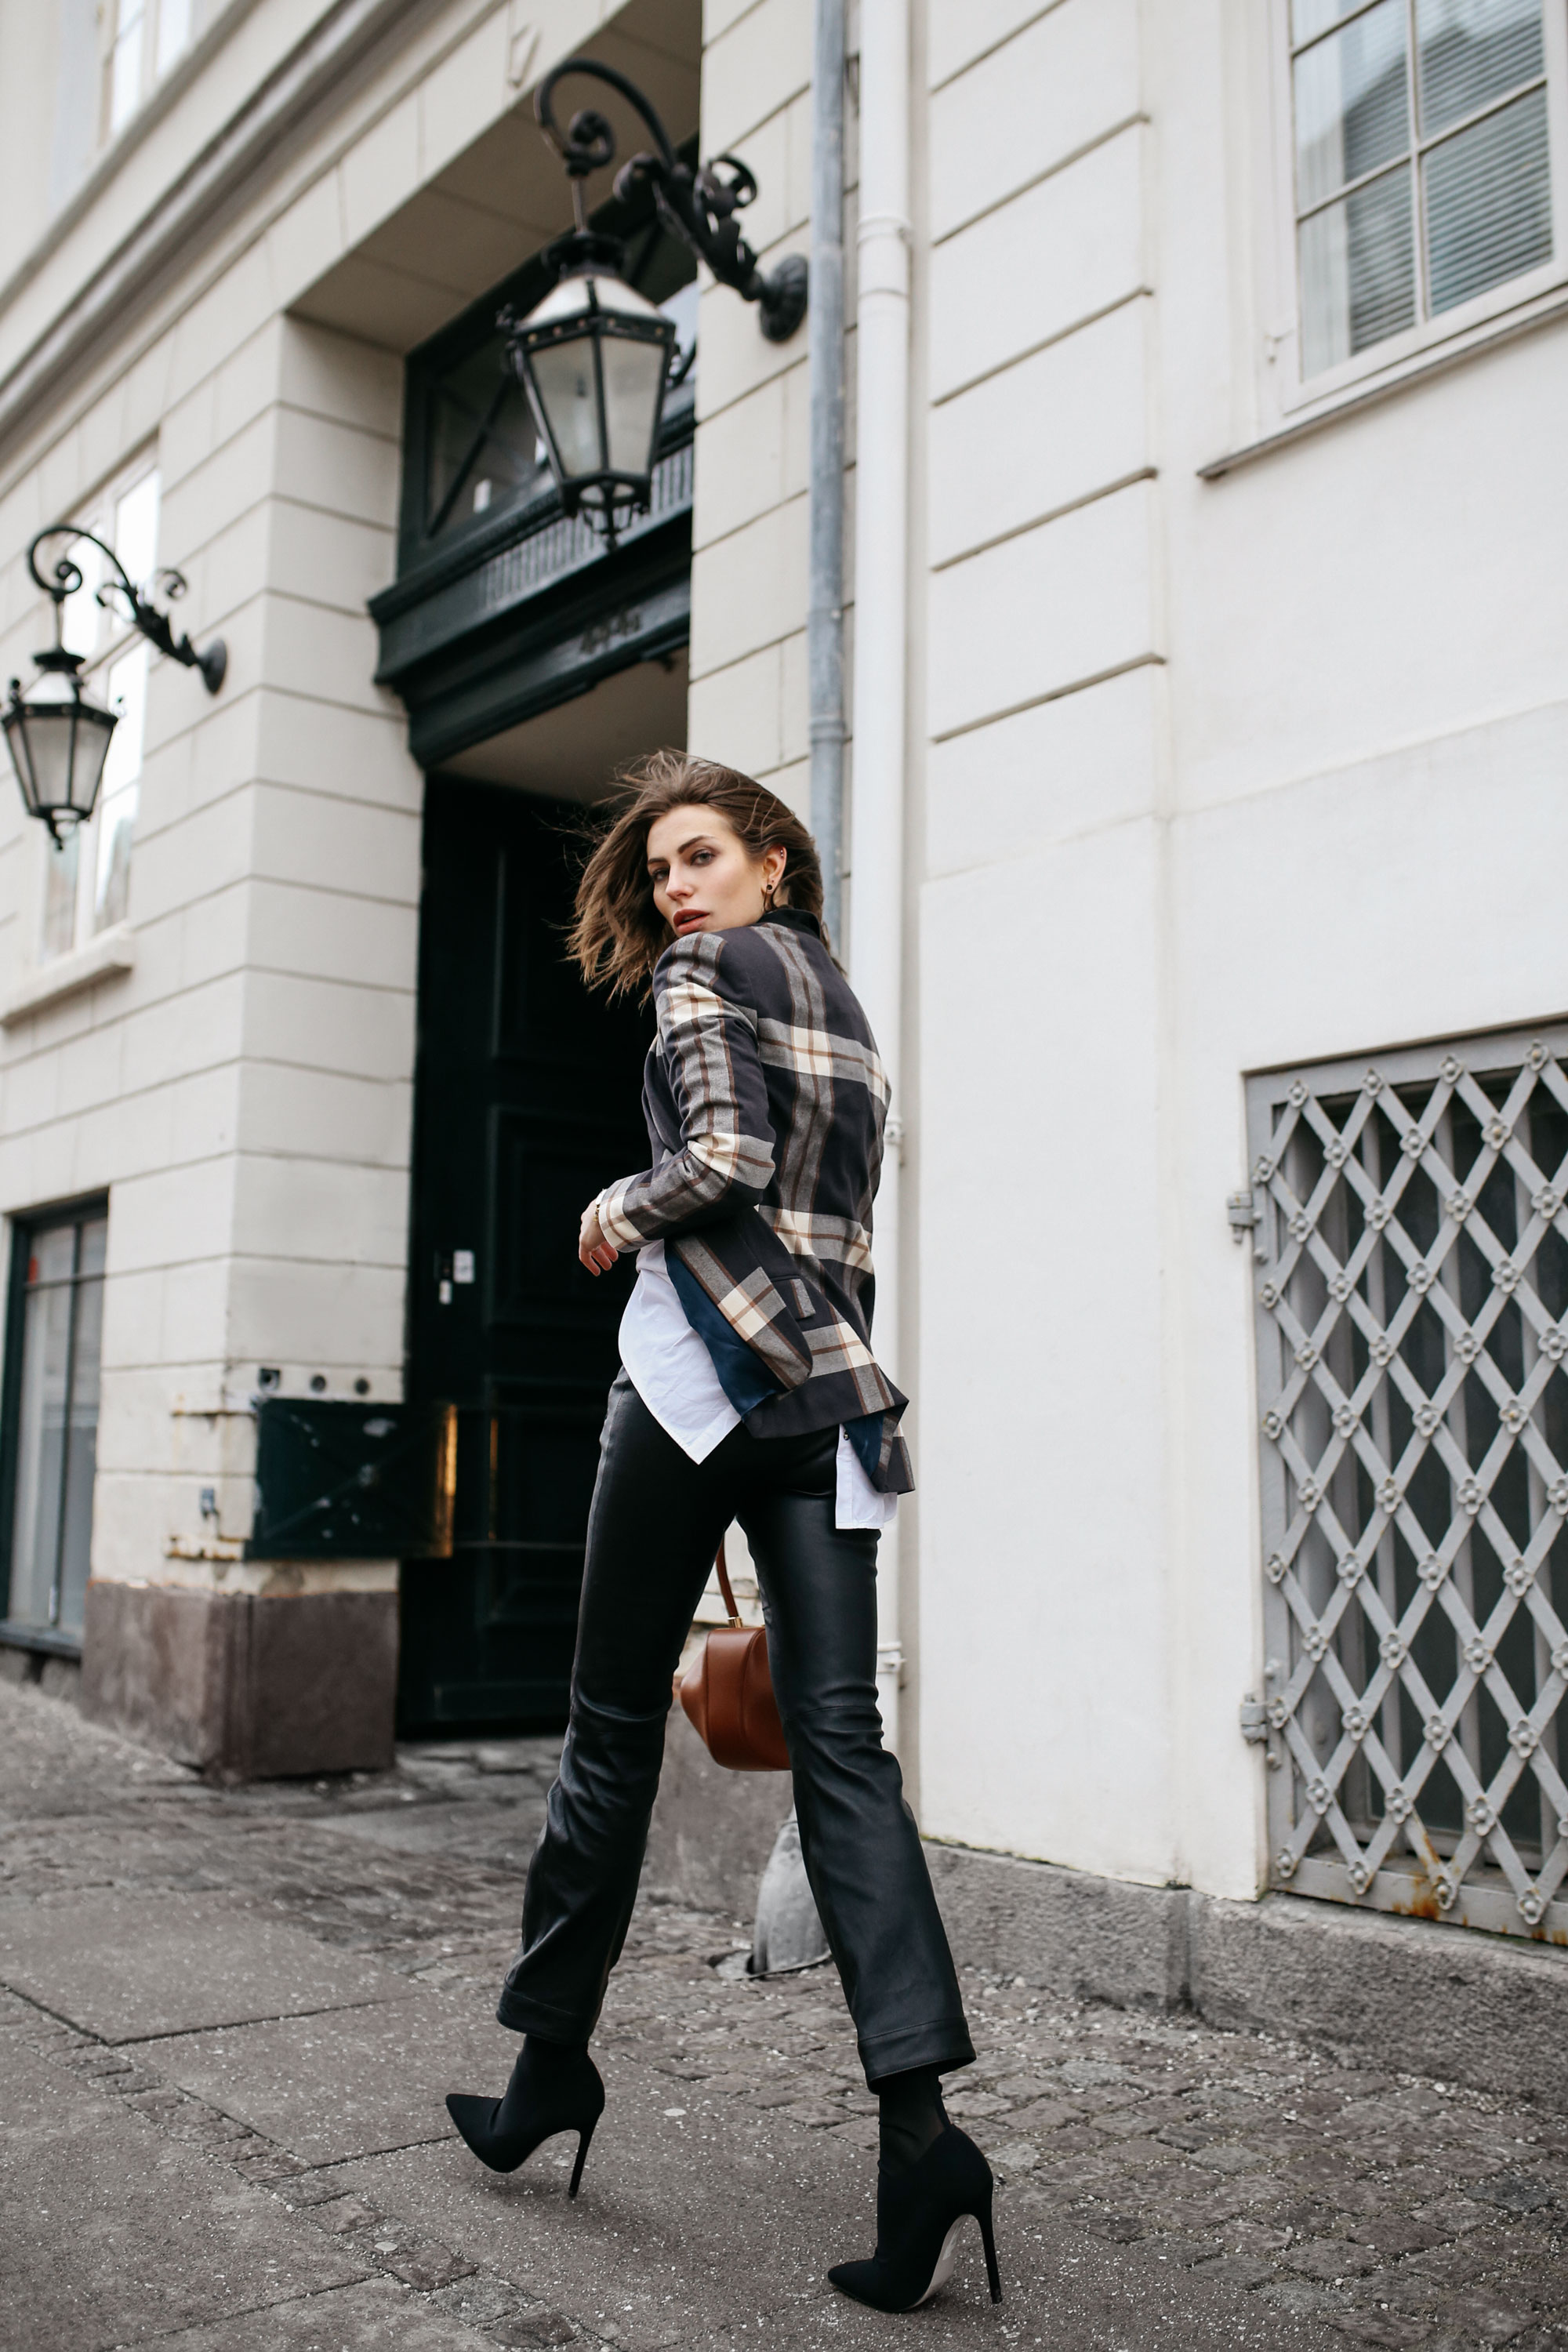 Street Style in Kopenhagen | Brands: Gestuz, By Malene Birger, Gabriela Hearst | Style: AW18 office, sexy, casual, business, edgy, checked, sophisticated | Fashion Blogger Editorial